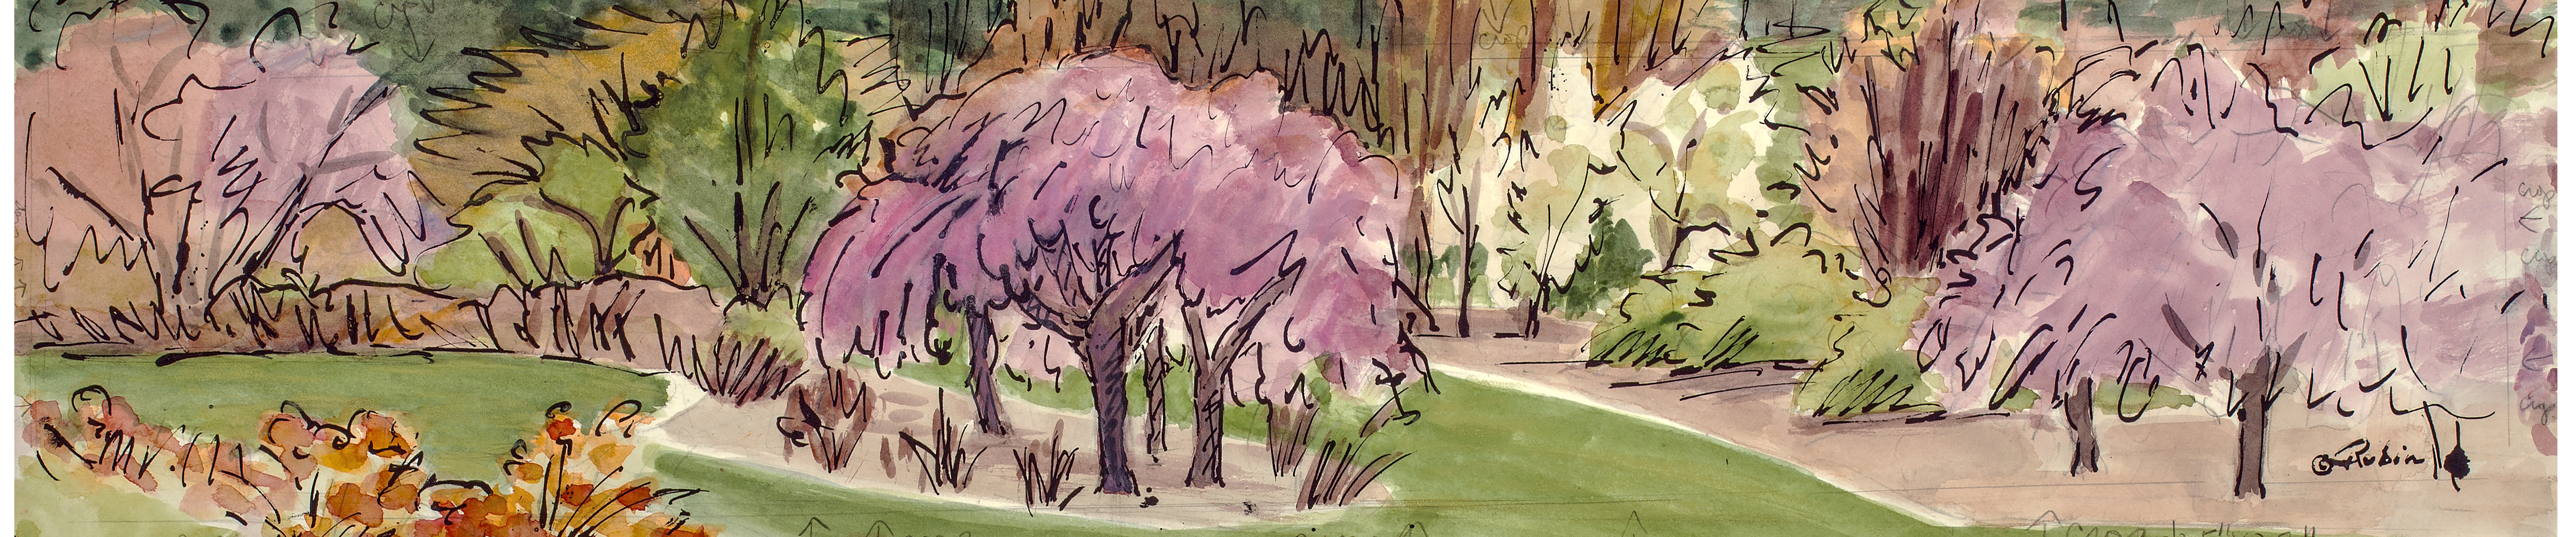 springscapes-iii-printed